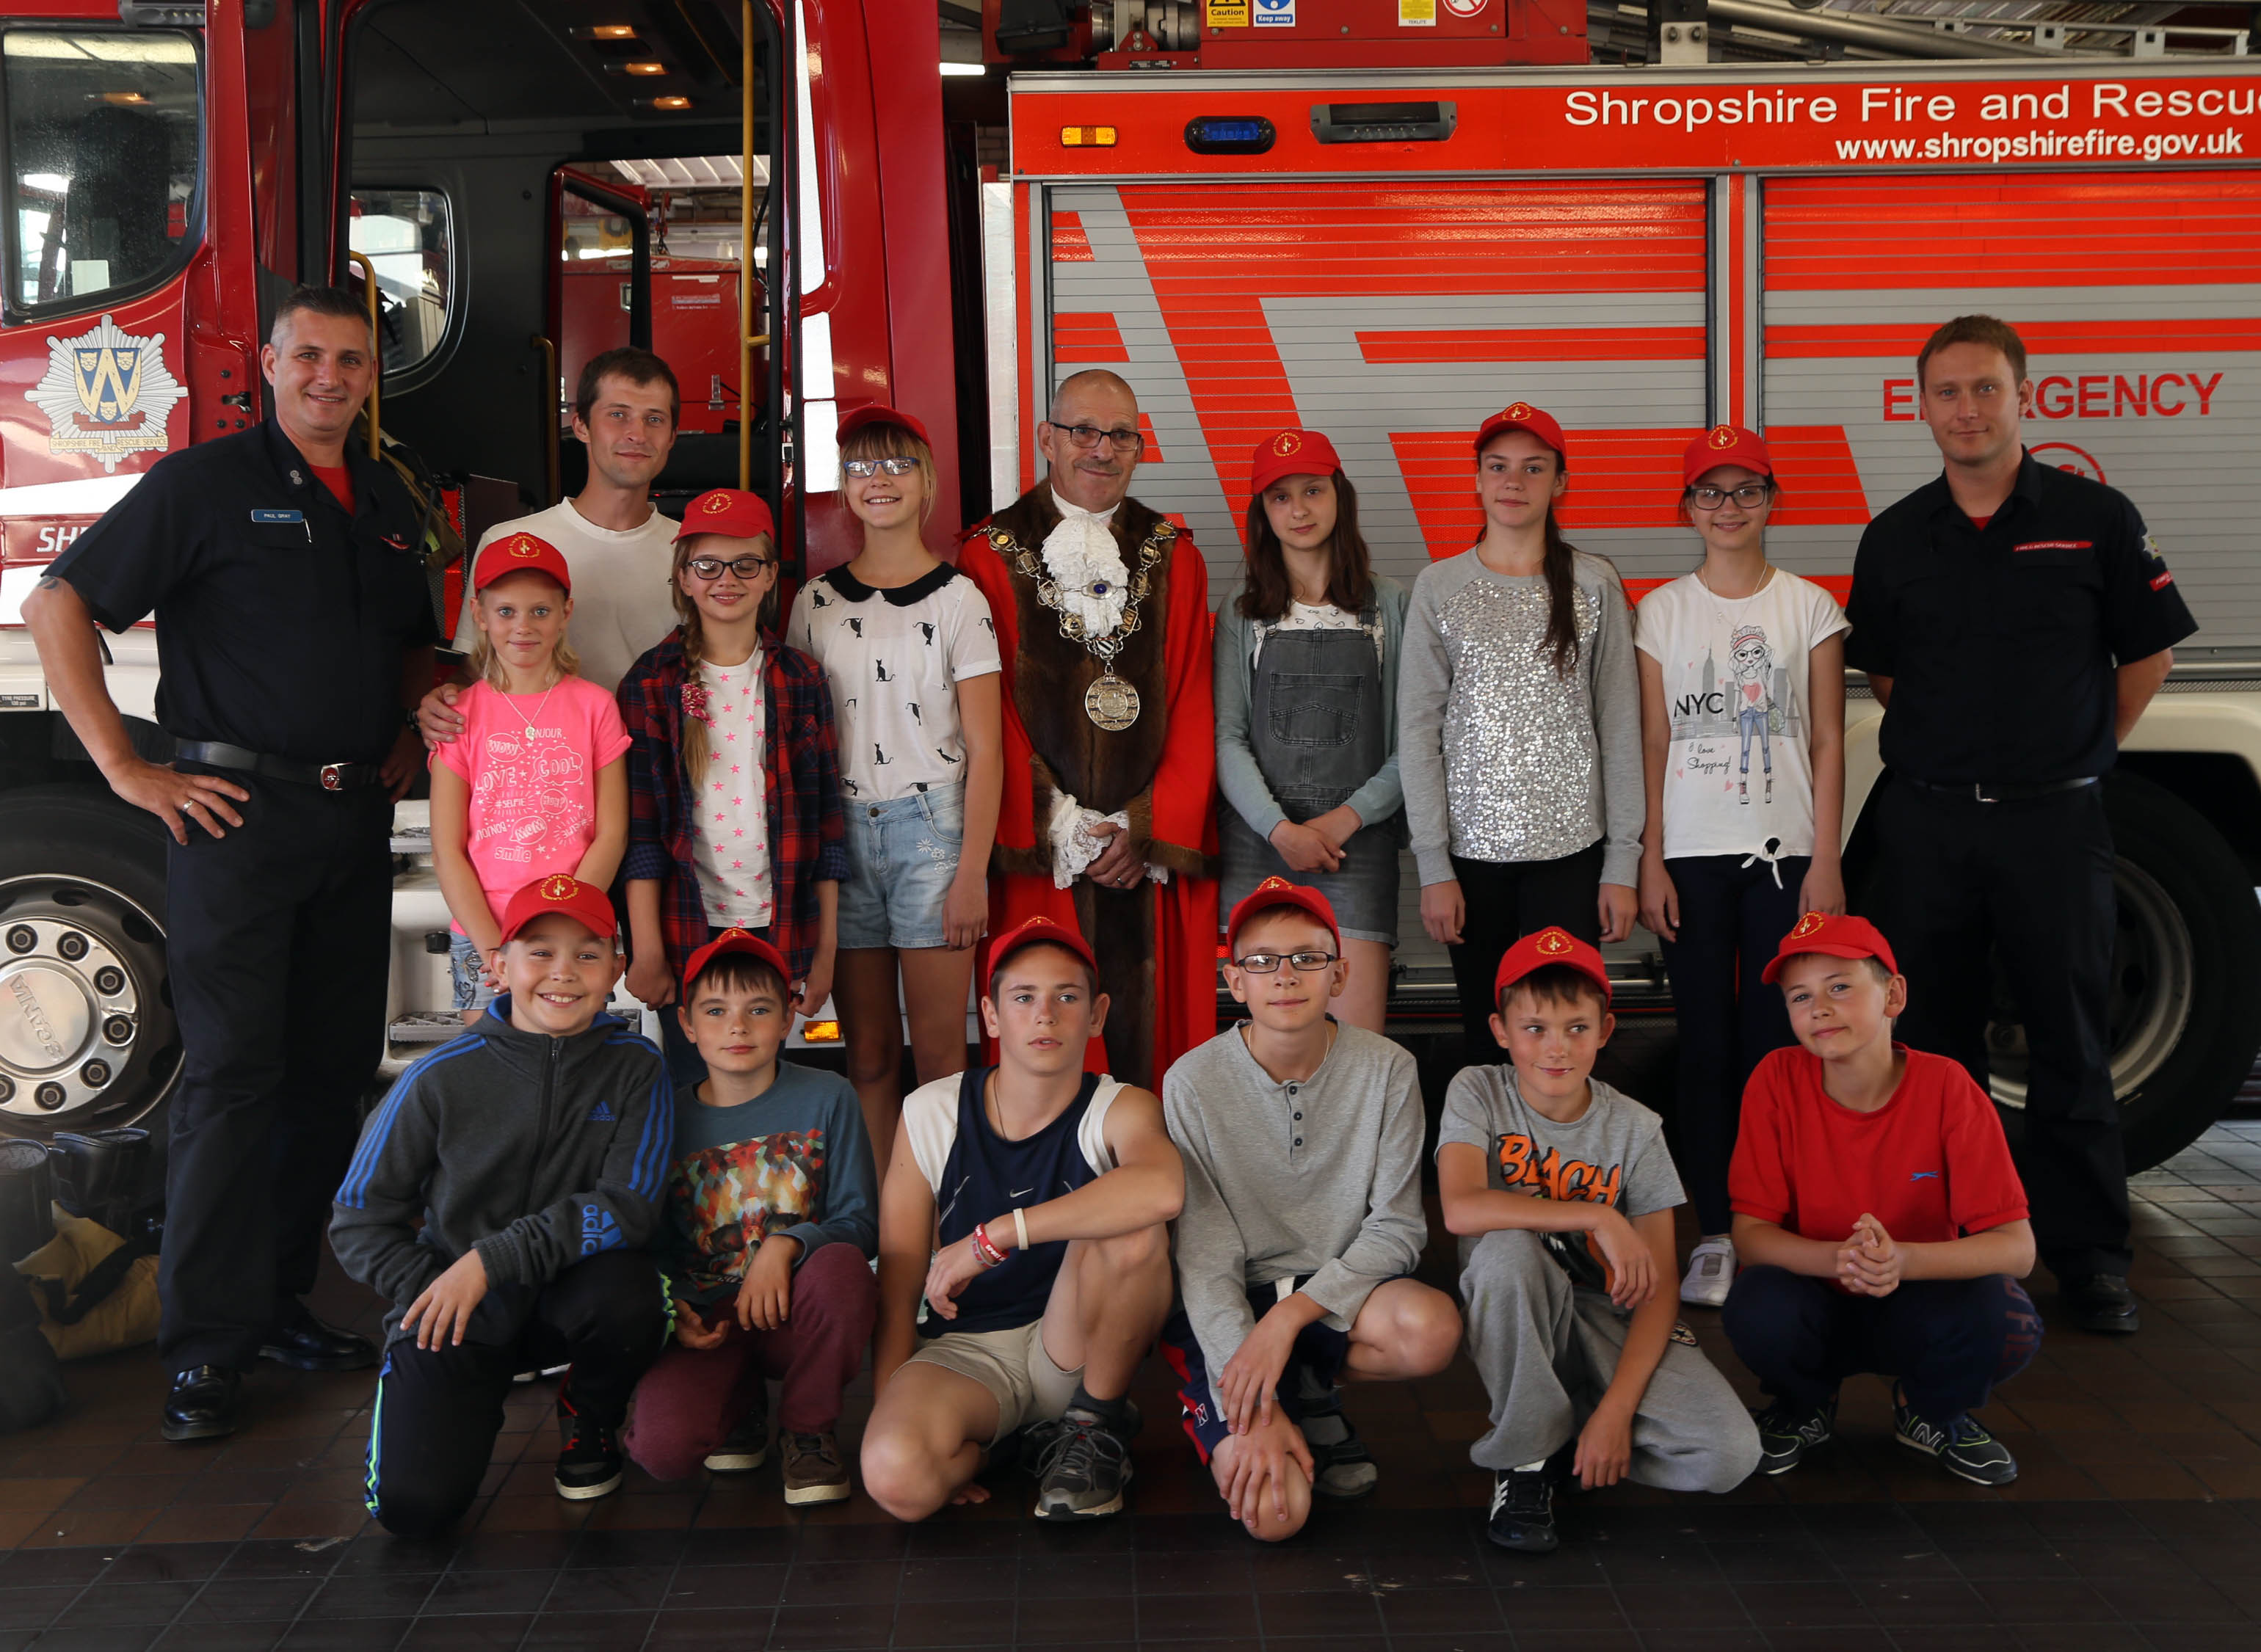 A formal line up in front of a Shropshire Fire and Rescue Service appliance as a memory of the trip to Shrewsbury Fire Station by children from Chernobyl